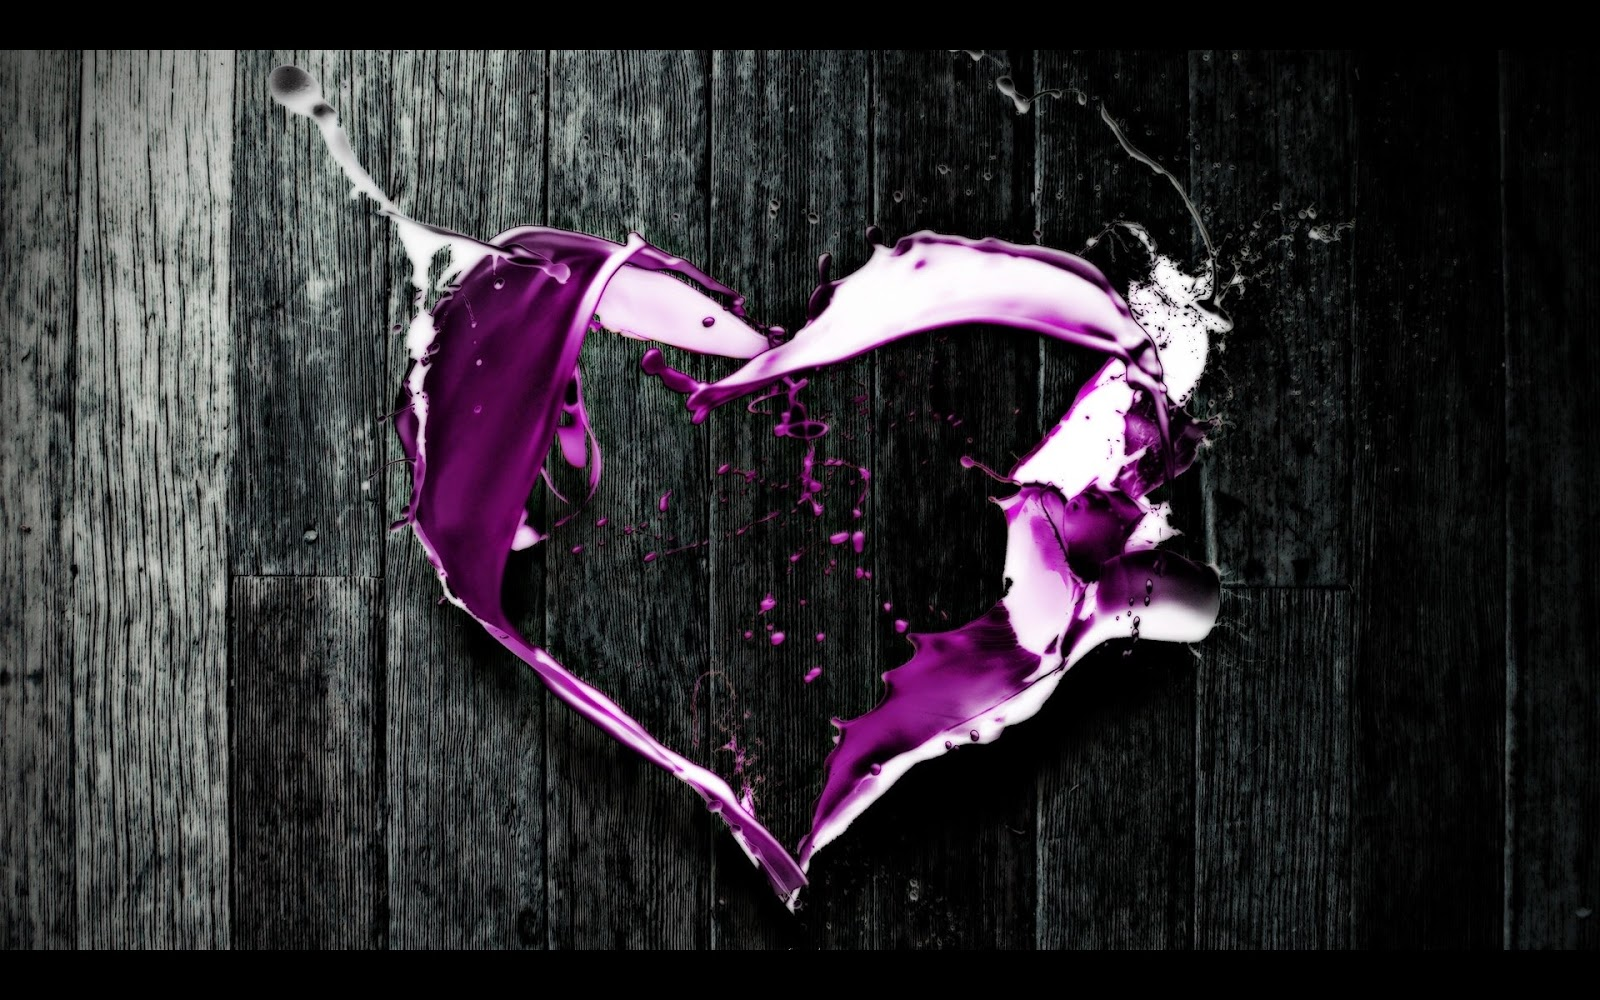 Purple Heart Abstract Art HD Wallpaper | Love Wallpapers ...